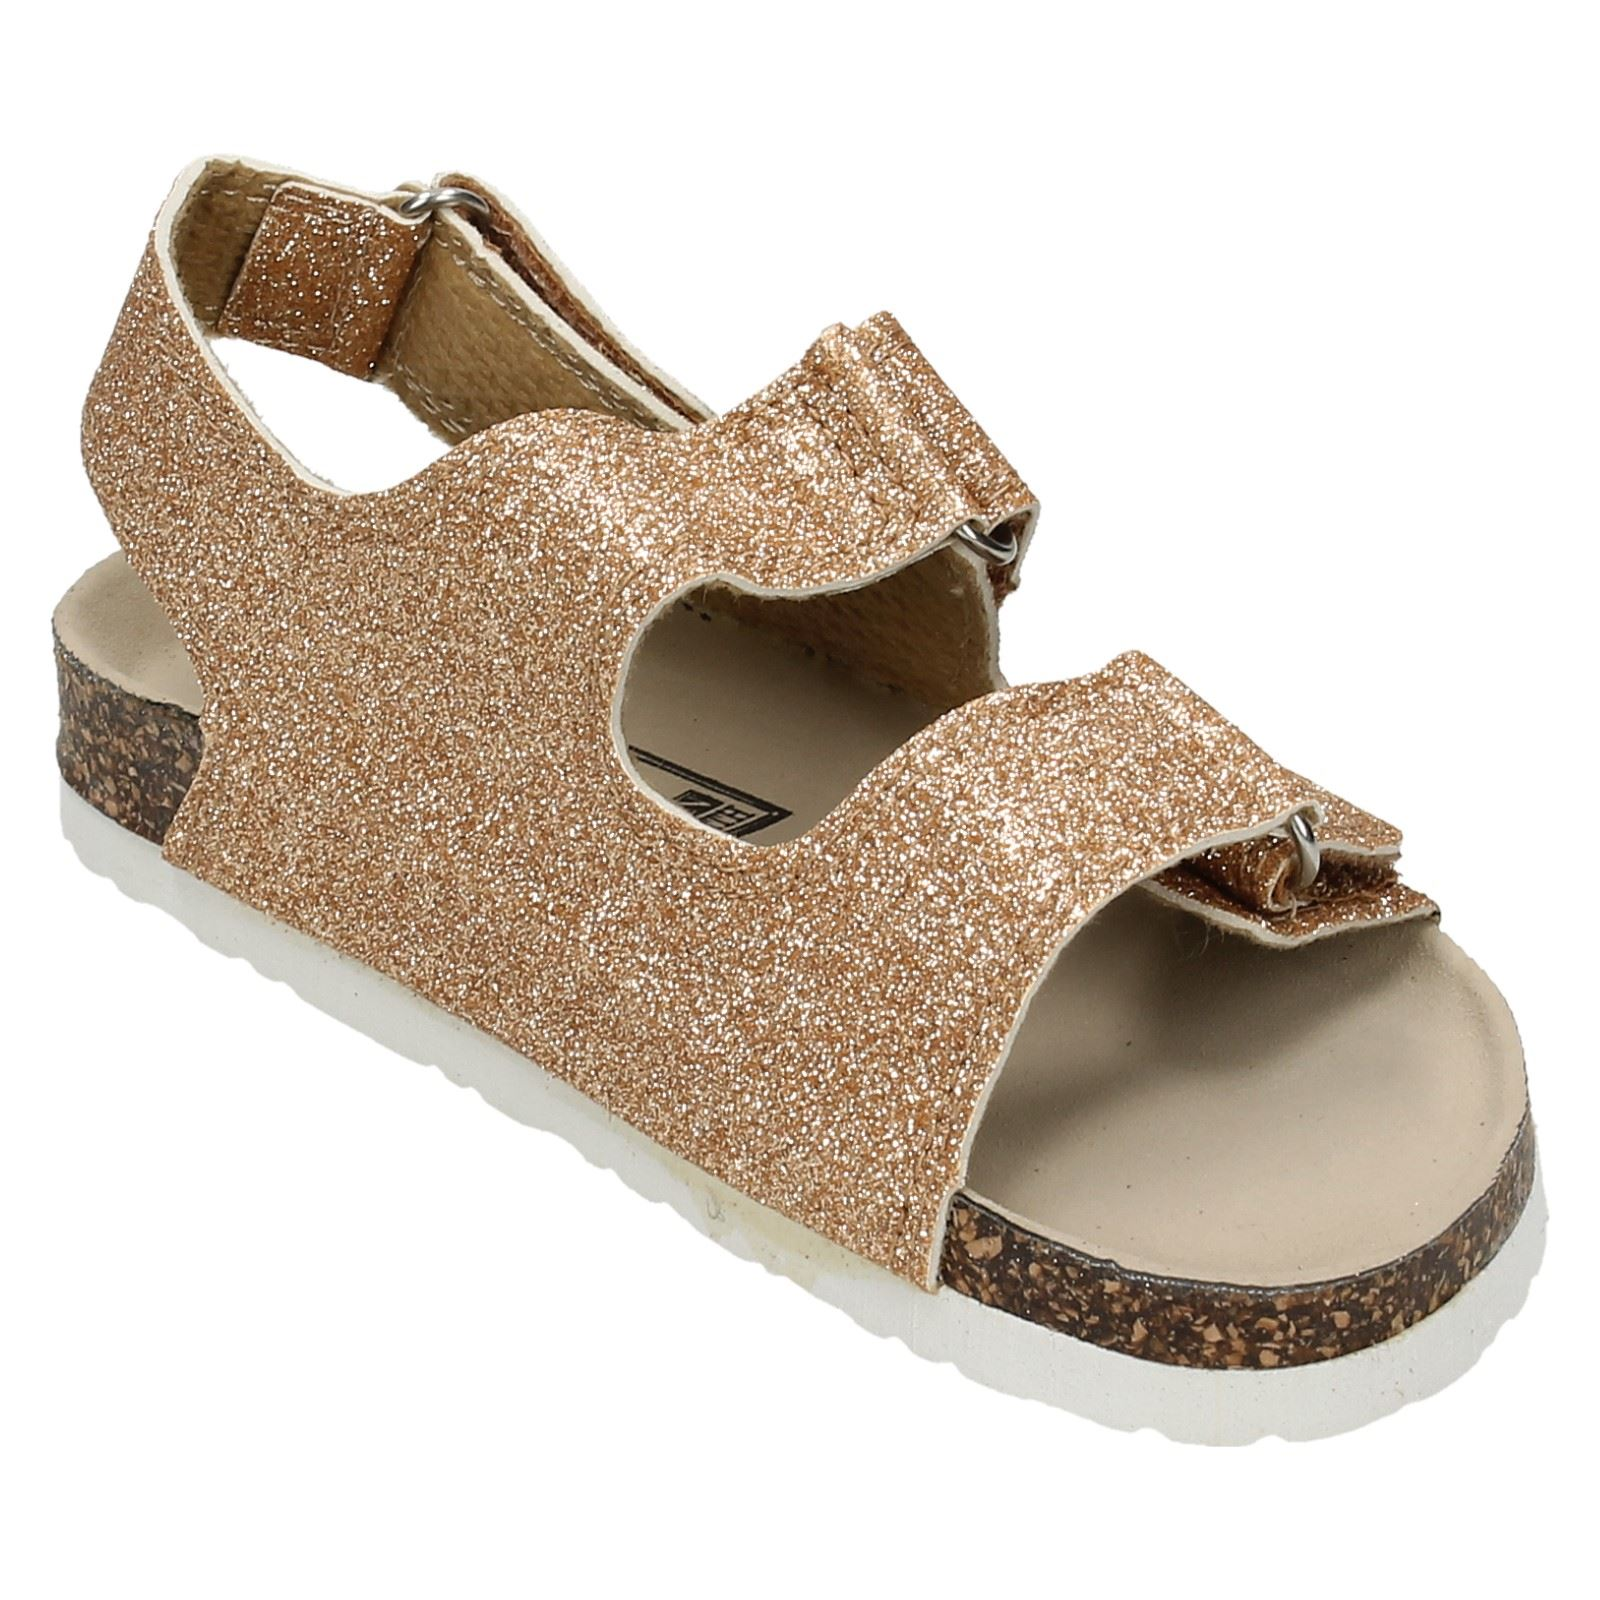 Chicas Down to Earth Sandalias De Brillo' 050'